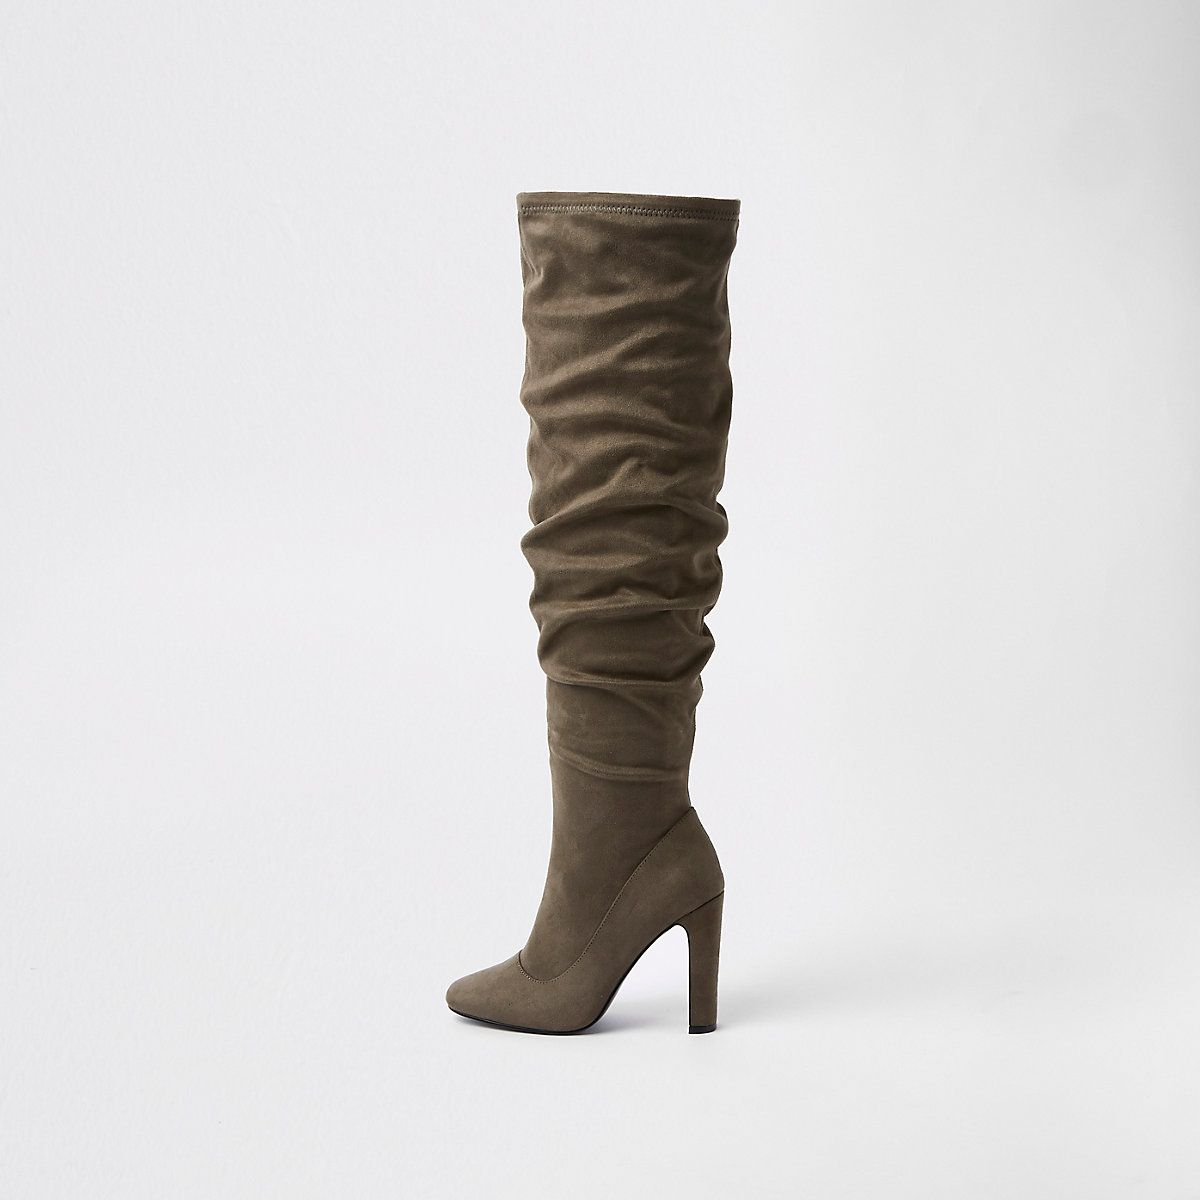 86a9c82e43b Dark grey over the knee slouch boots   Booming Booties   Boots, Shoe ...